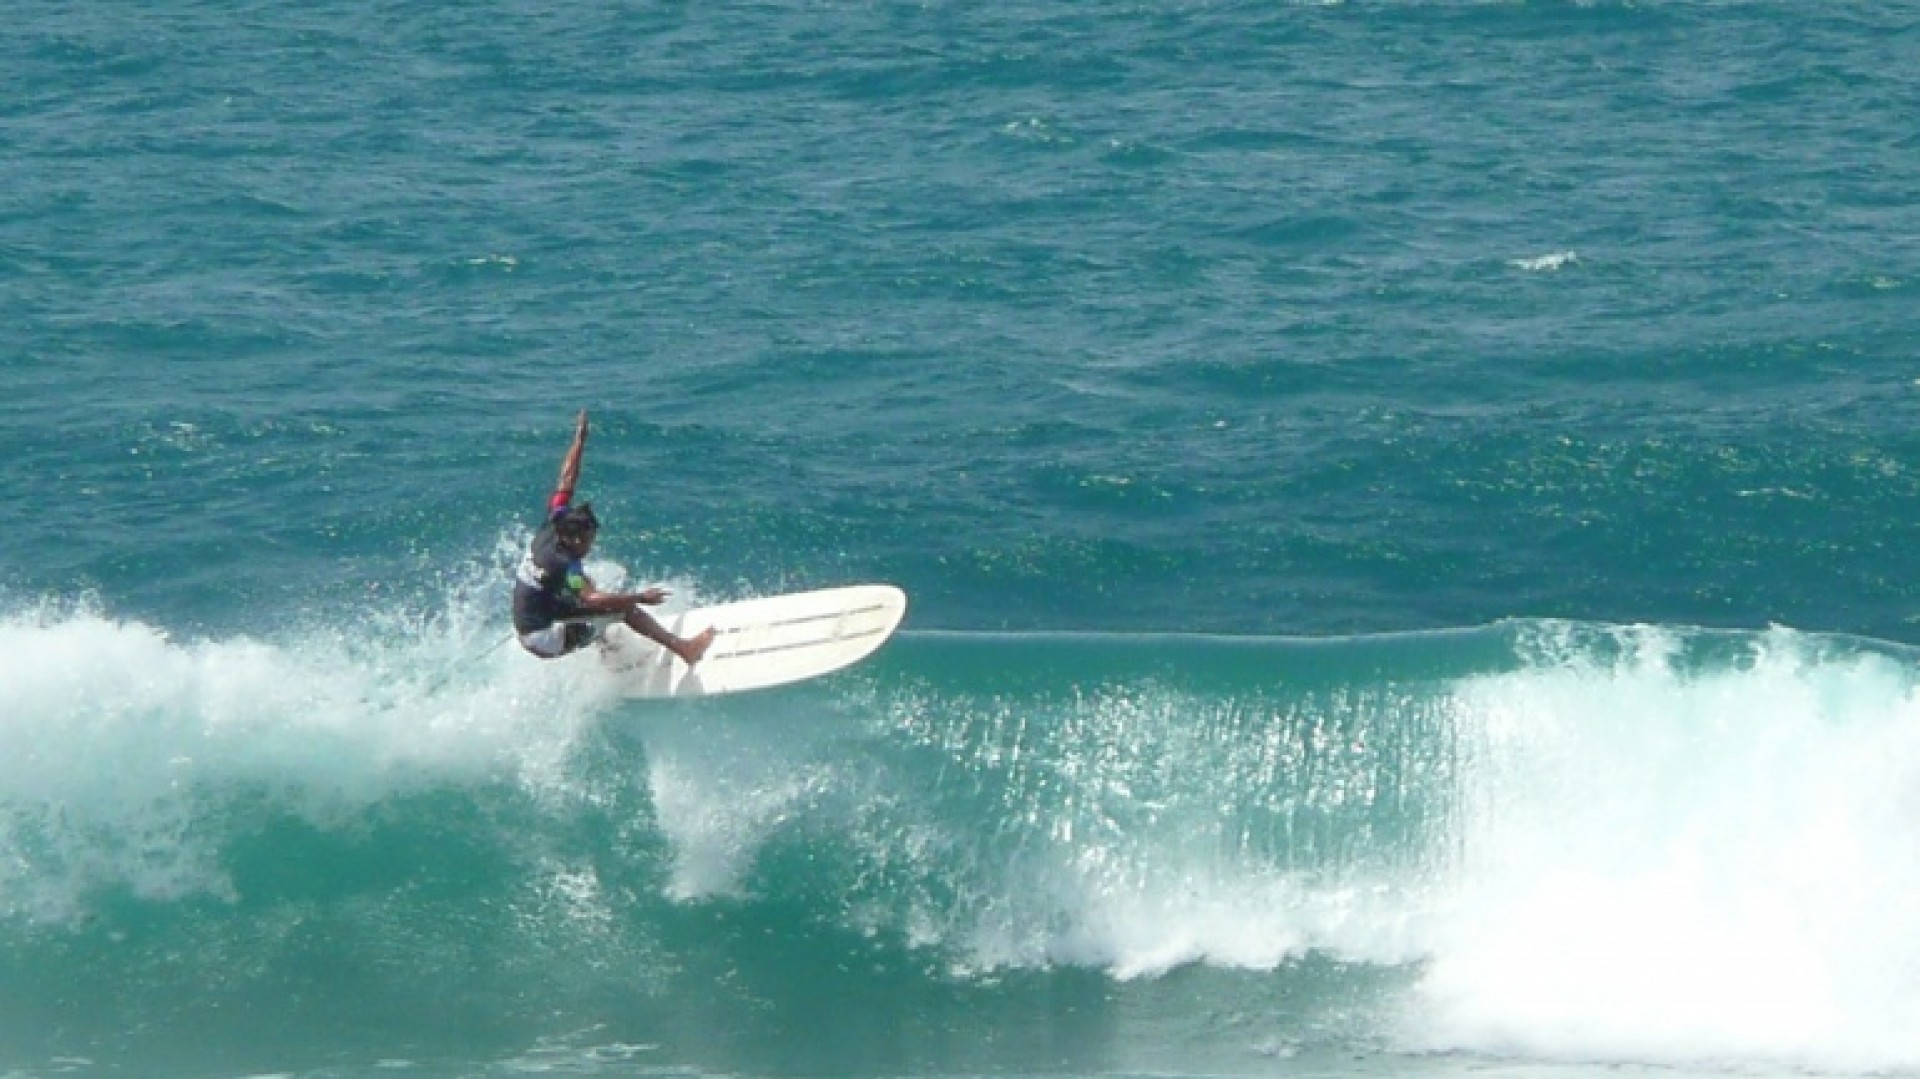 Ron Madinina's photo of Plage des Surfeurs